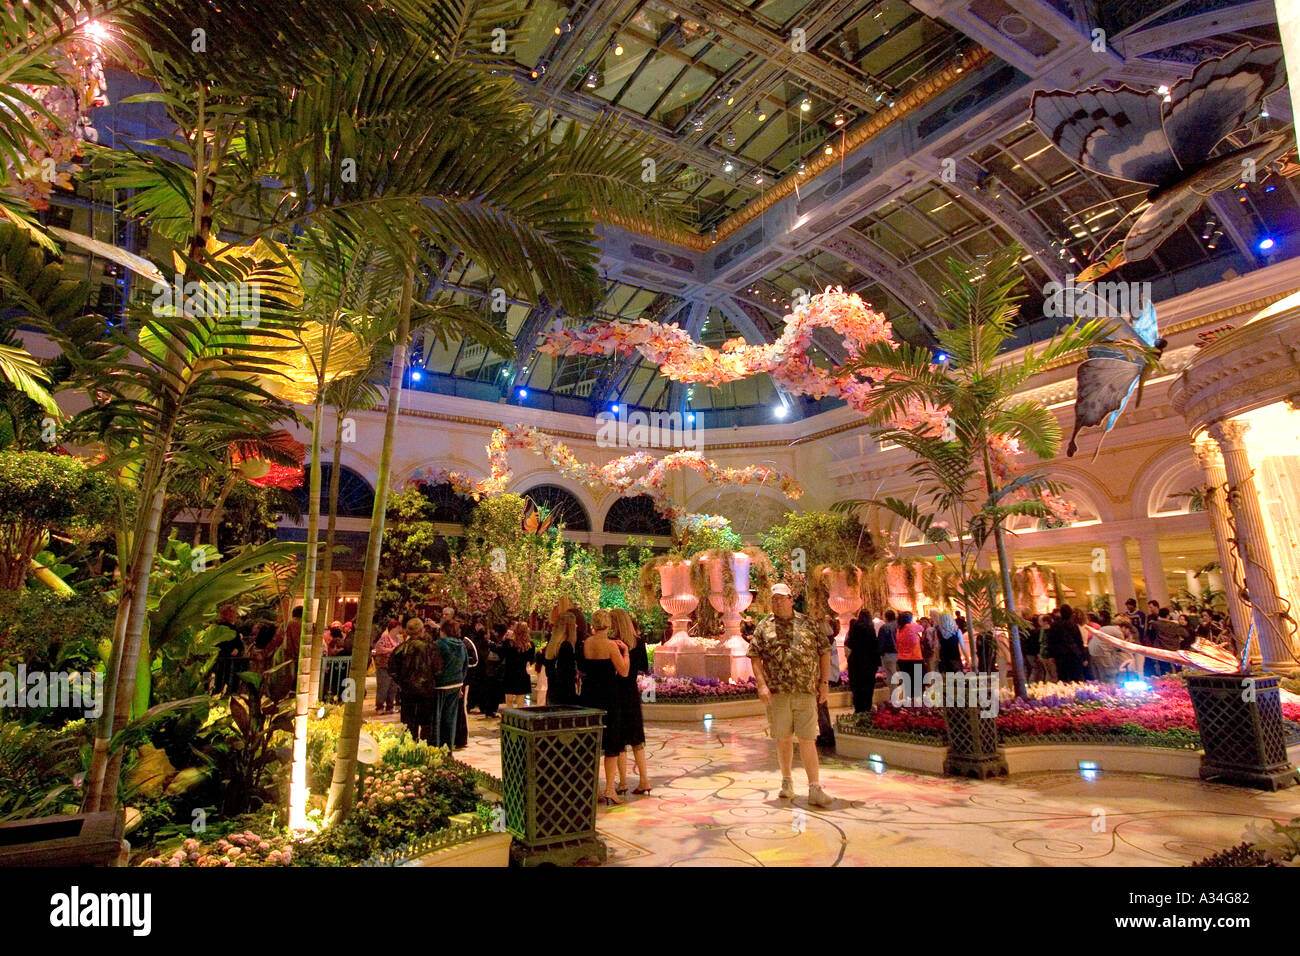 Conservatory and Botanical Gardens inside Bellagio hotel Las Vegas ...